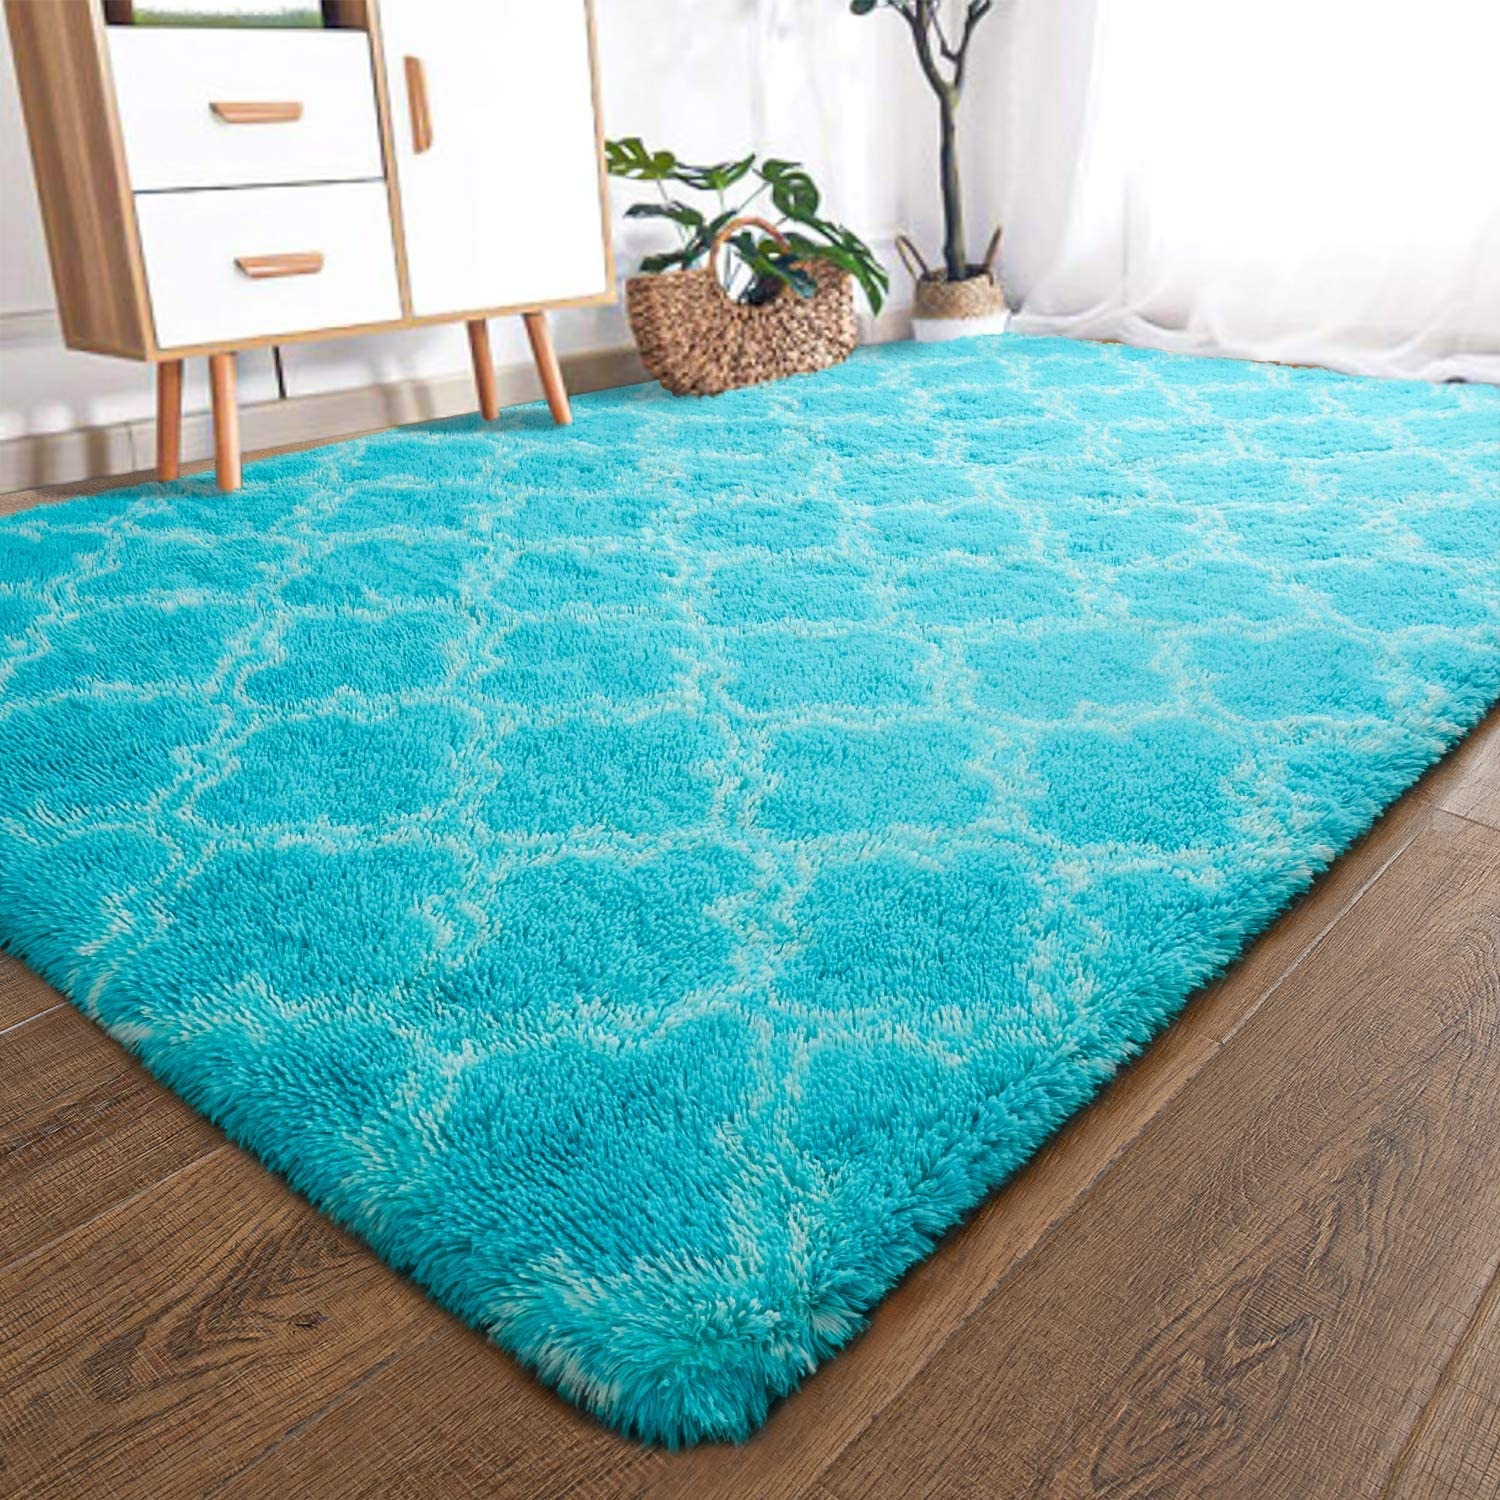 YOH Modern Soft Fluffy Shaggy Area Rug for Bedroom Living Room Indoor Home Decorative Accent Floor Carpet, Rectangle Non-Slip Plush Furry Fur Rugs for Dorm Kids Room Baby Nursery 5x8 Feet, Teal